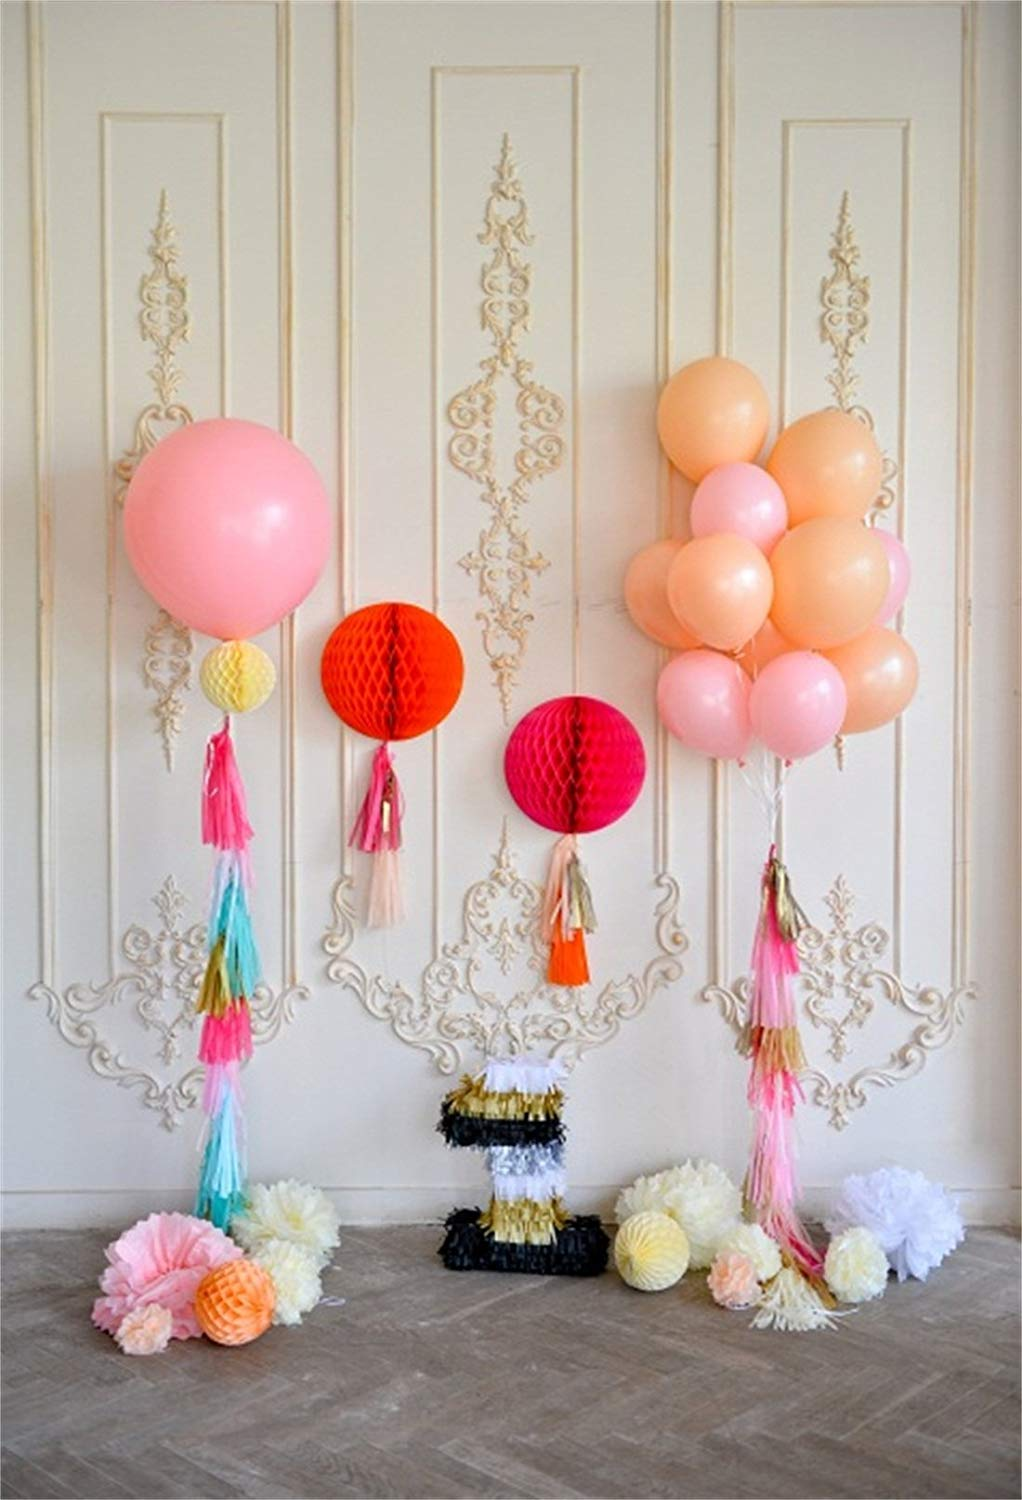 ABPHOTO Polyester 5x7ft Cake Smash Backdrop Girl 1st Birthday Backdrops For Photography First Party Decorations Photo Background Studio Props